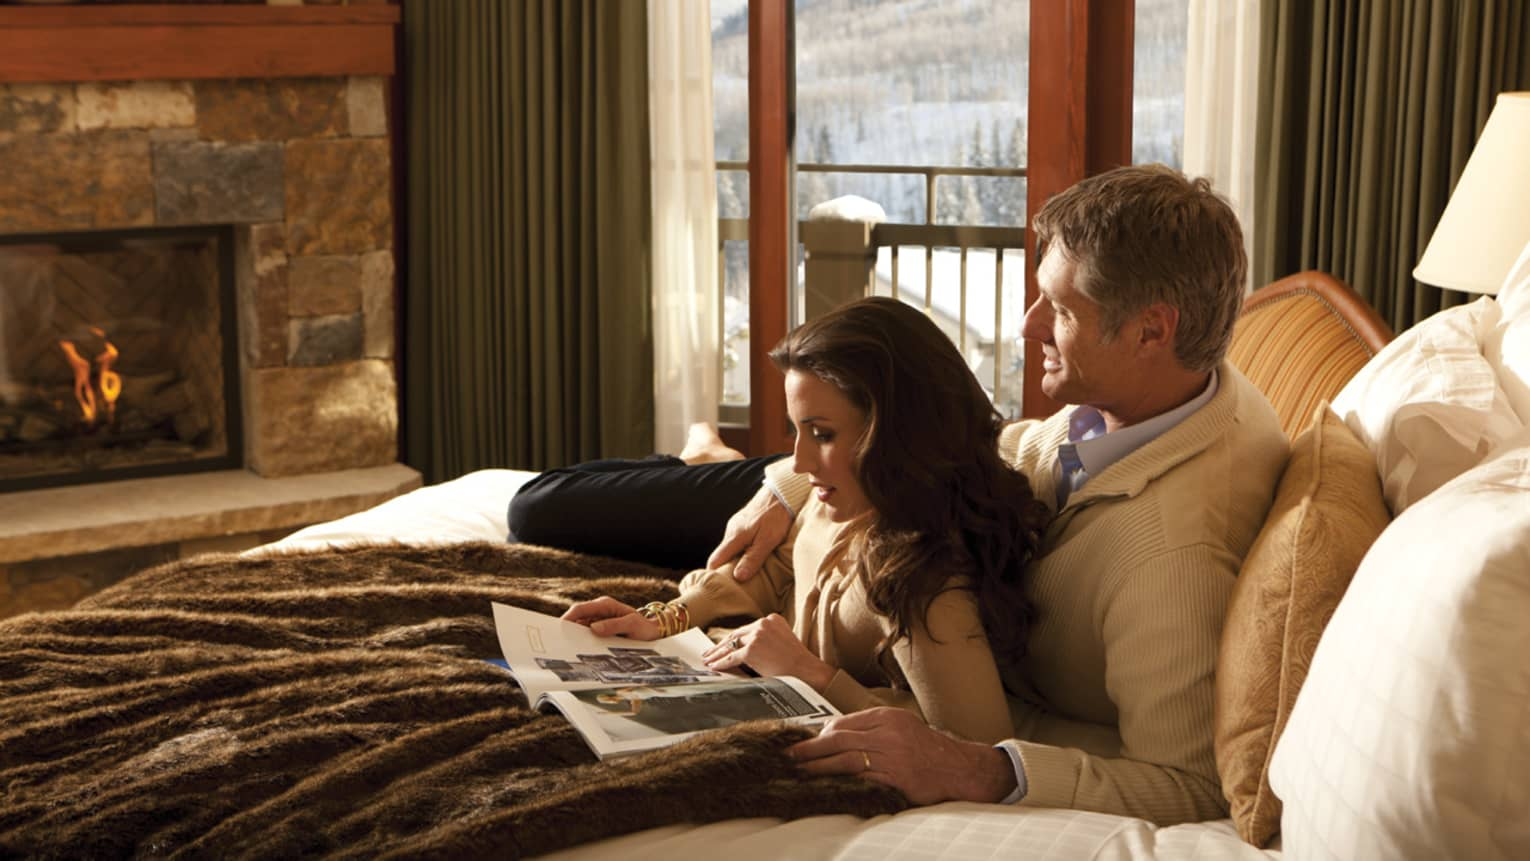 Man and woman read magazine and cuddle on bed with soft brown bedspread in front of stone fireplace